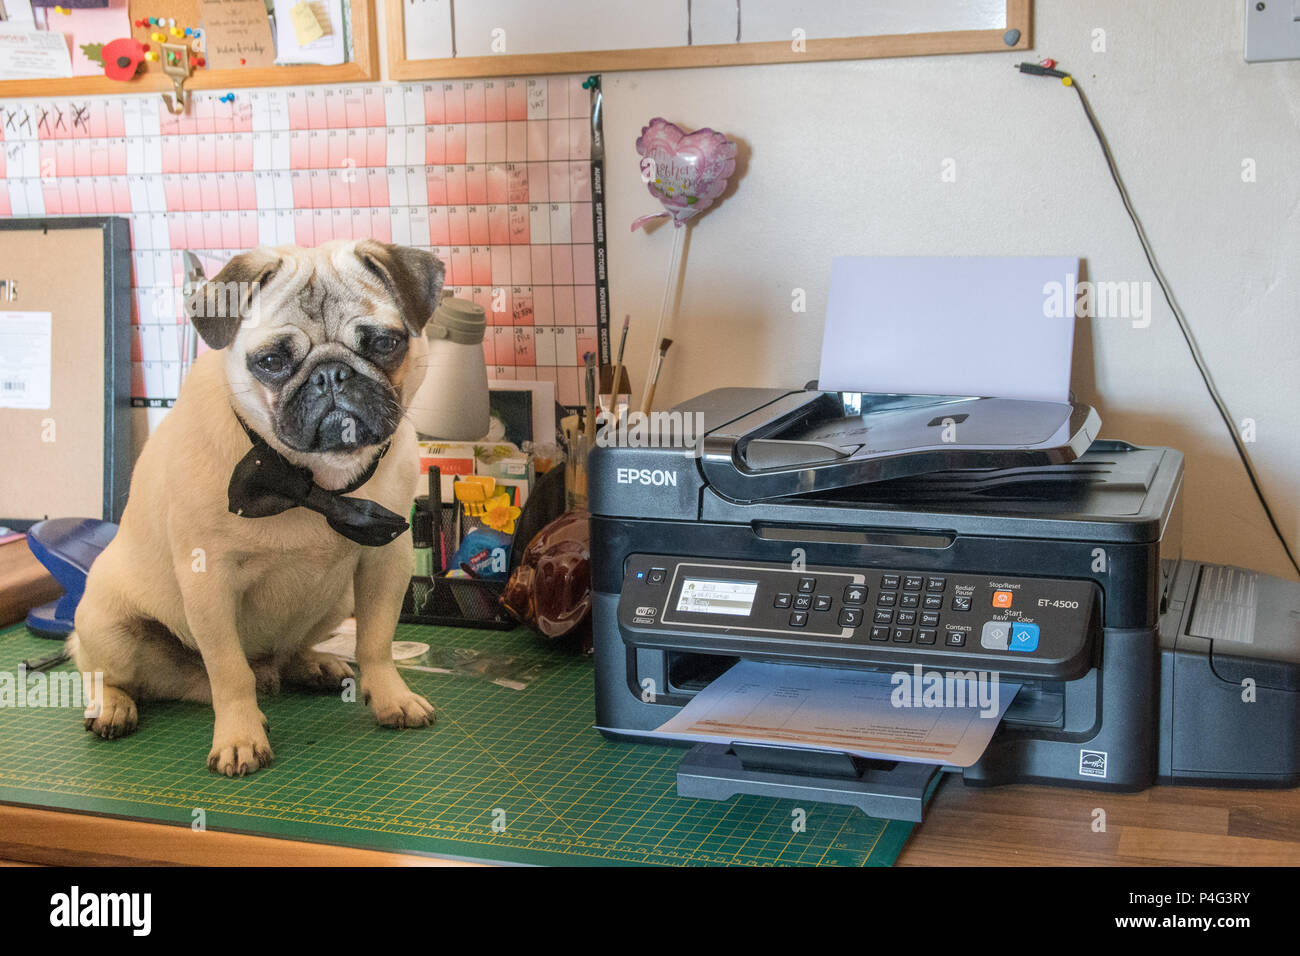 Pug Pup sitting next to printer dressed up for bring your dog to work day Stock Photo